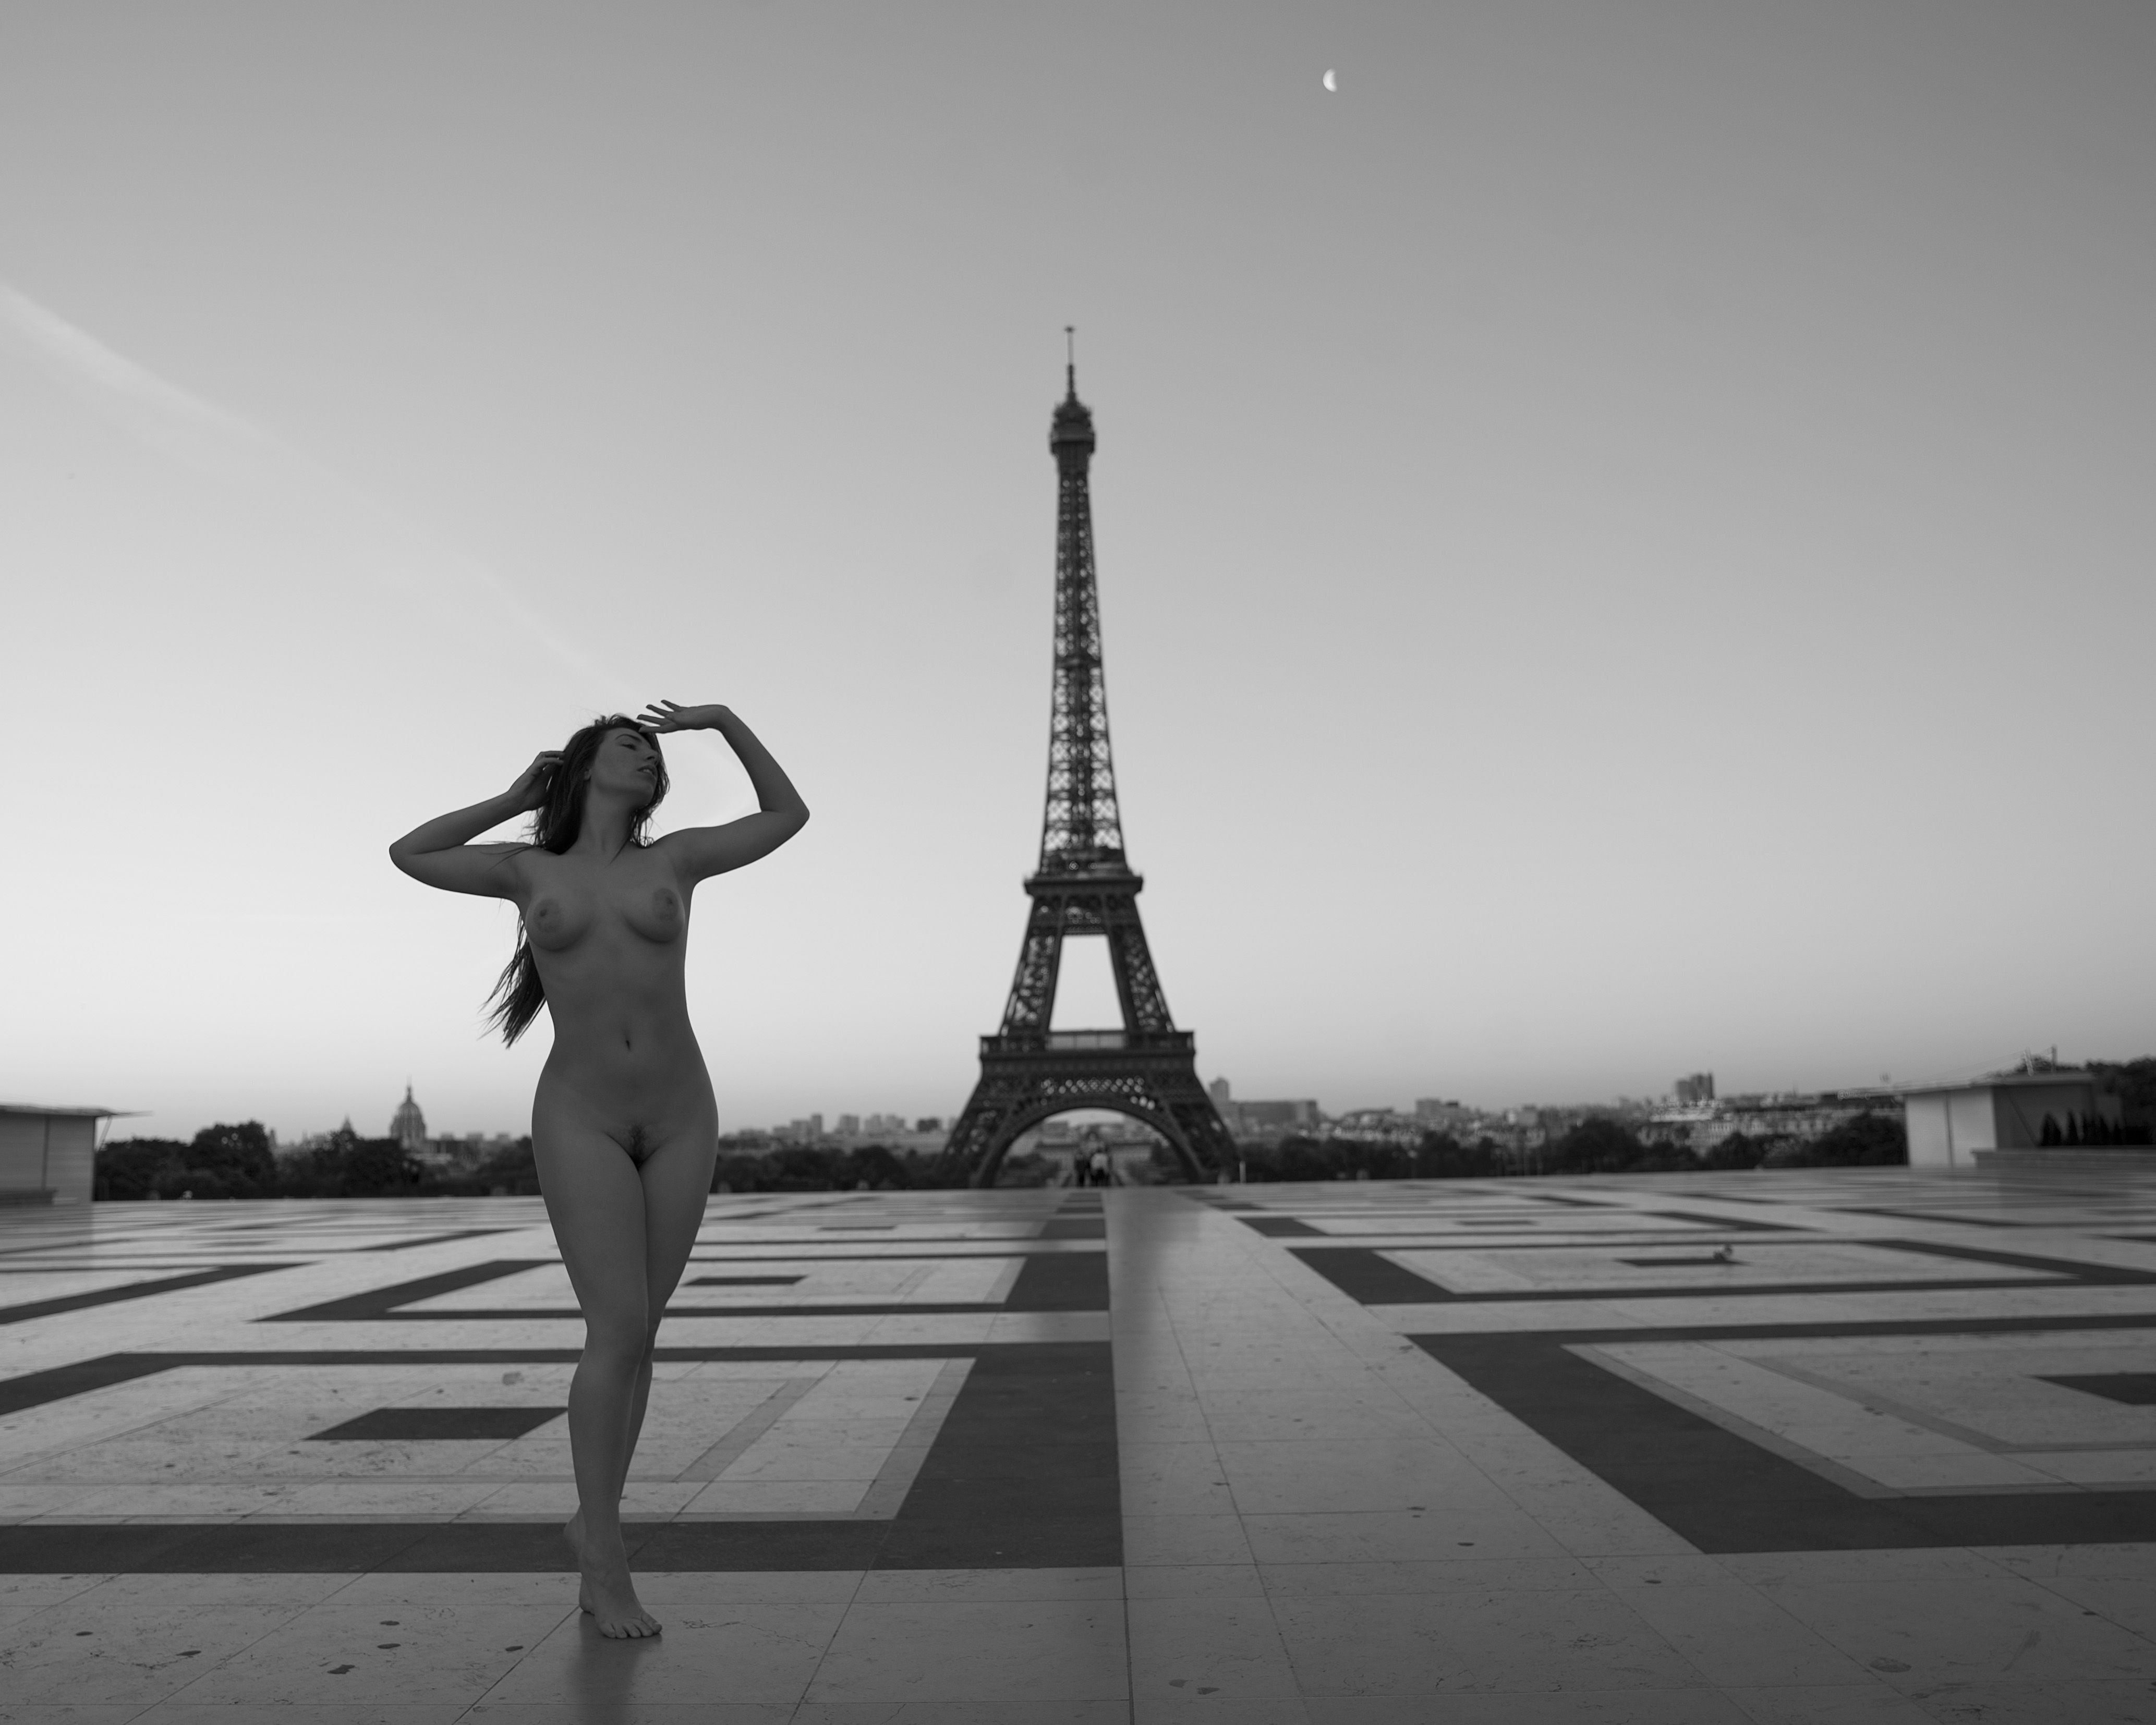 pissing-on-the-eiffel-tower-hot-sexy-anal-porn-scenes